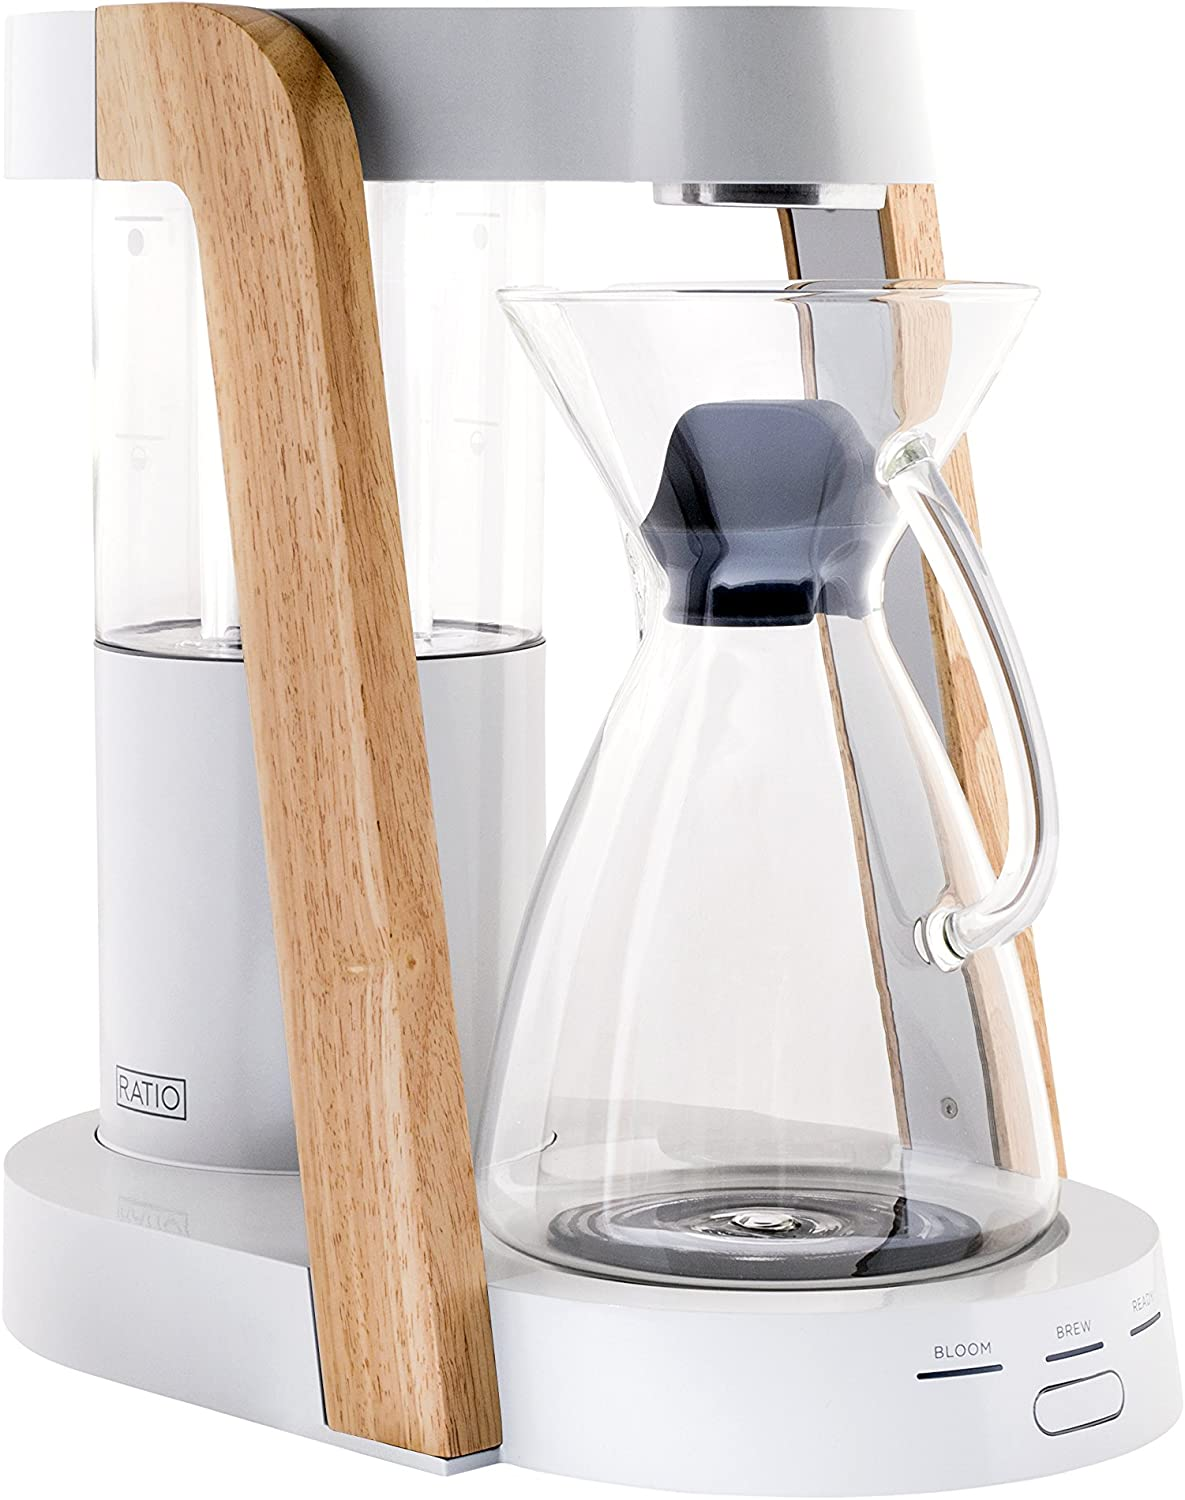 Ratio Eight Coffee Maker Oyster Amazon Ca Home Kitchen